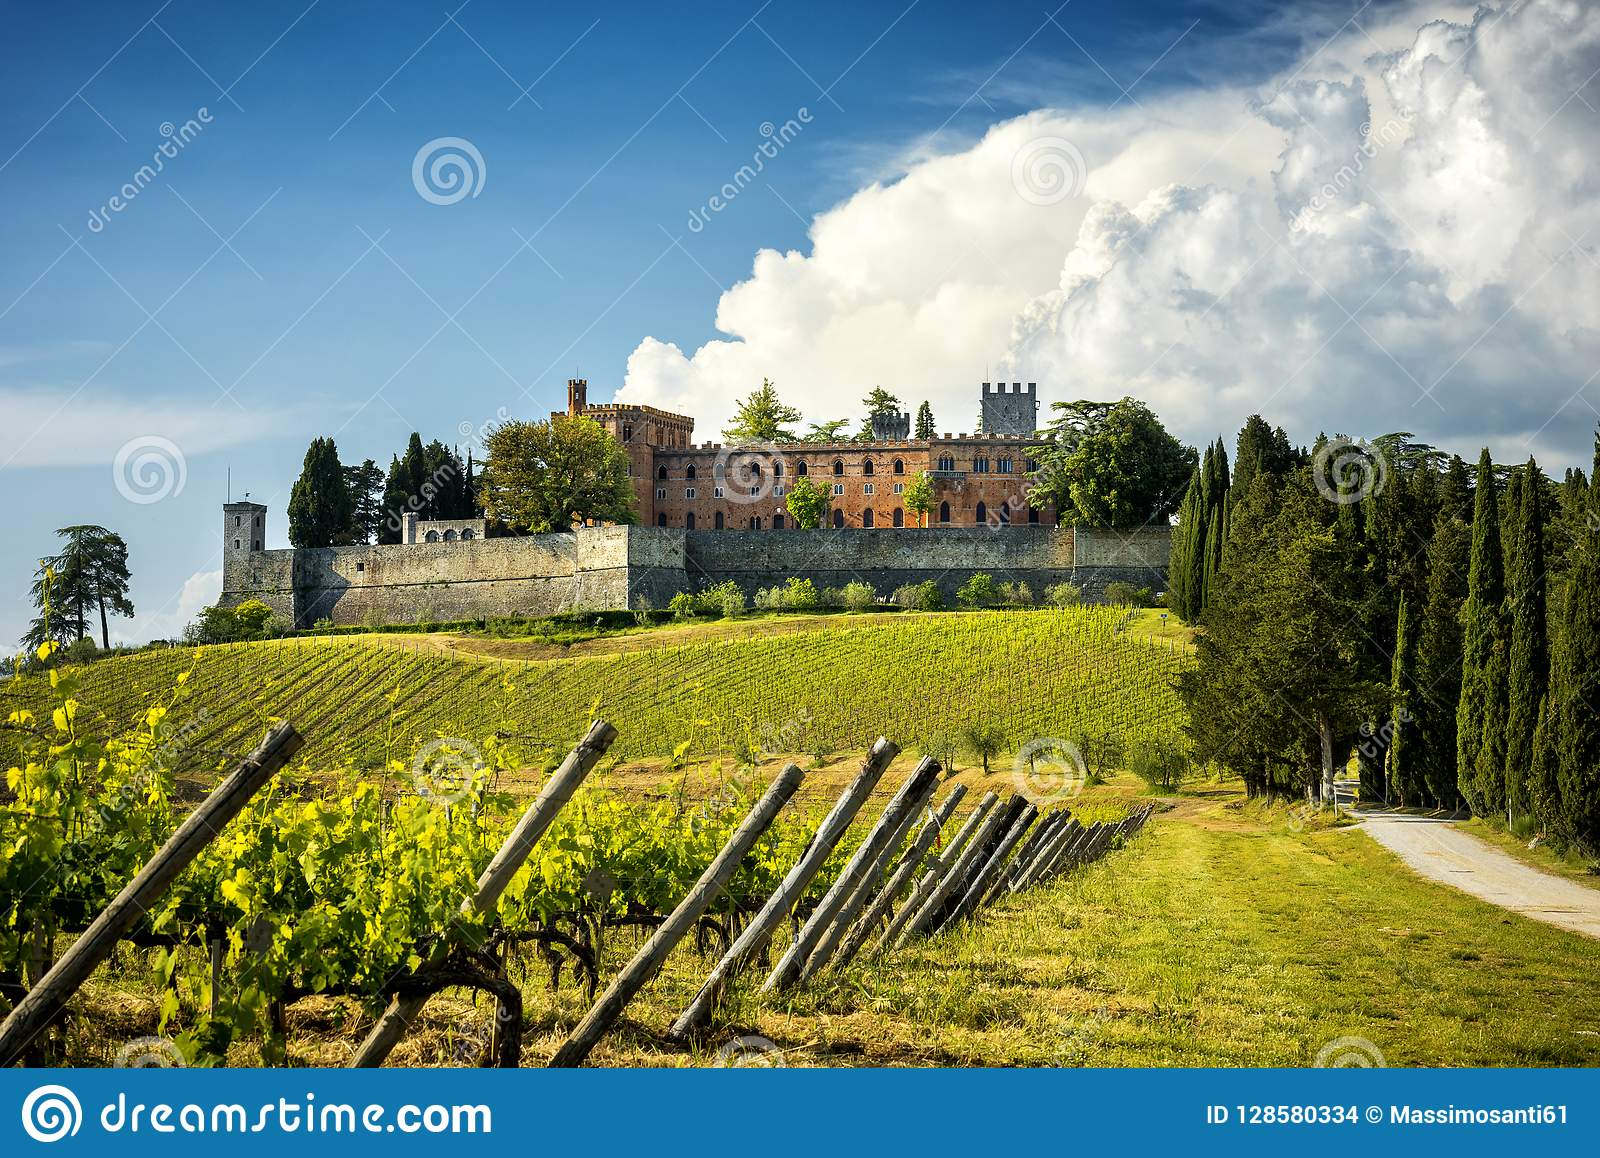 Brolio Castle and the nearby vineyards. The Castle is located in the production area of the famous Chianti Classico wine. Tuscany,